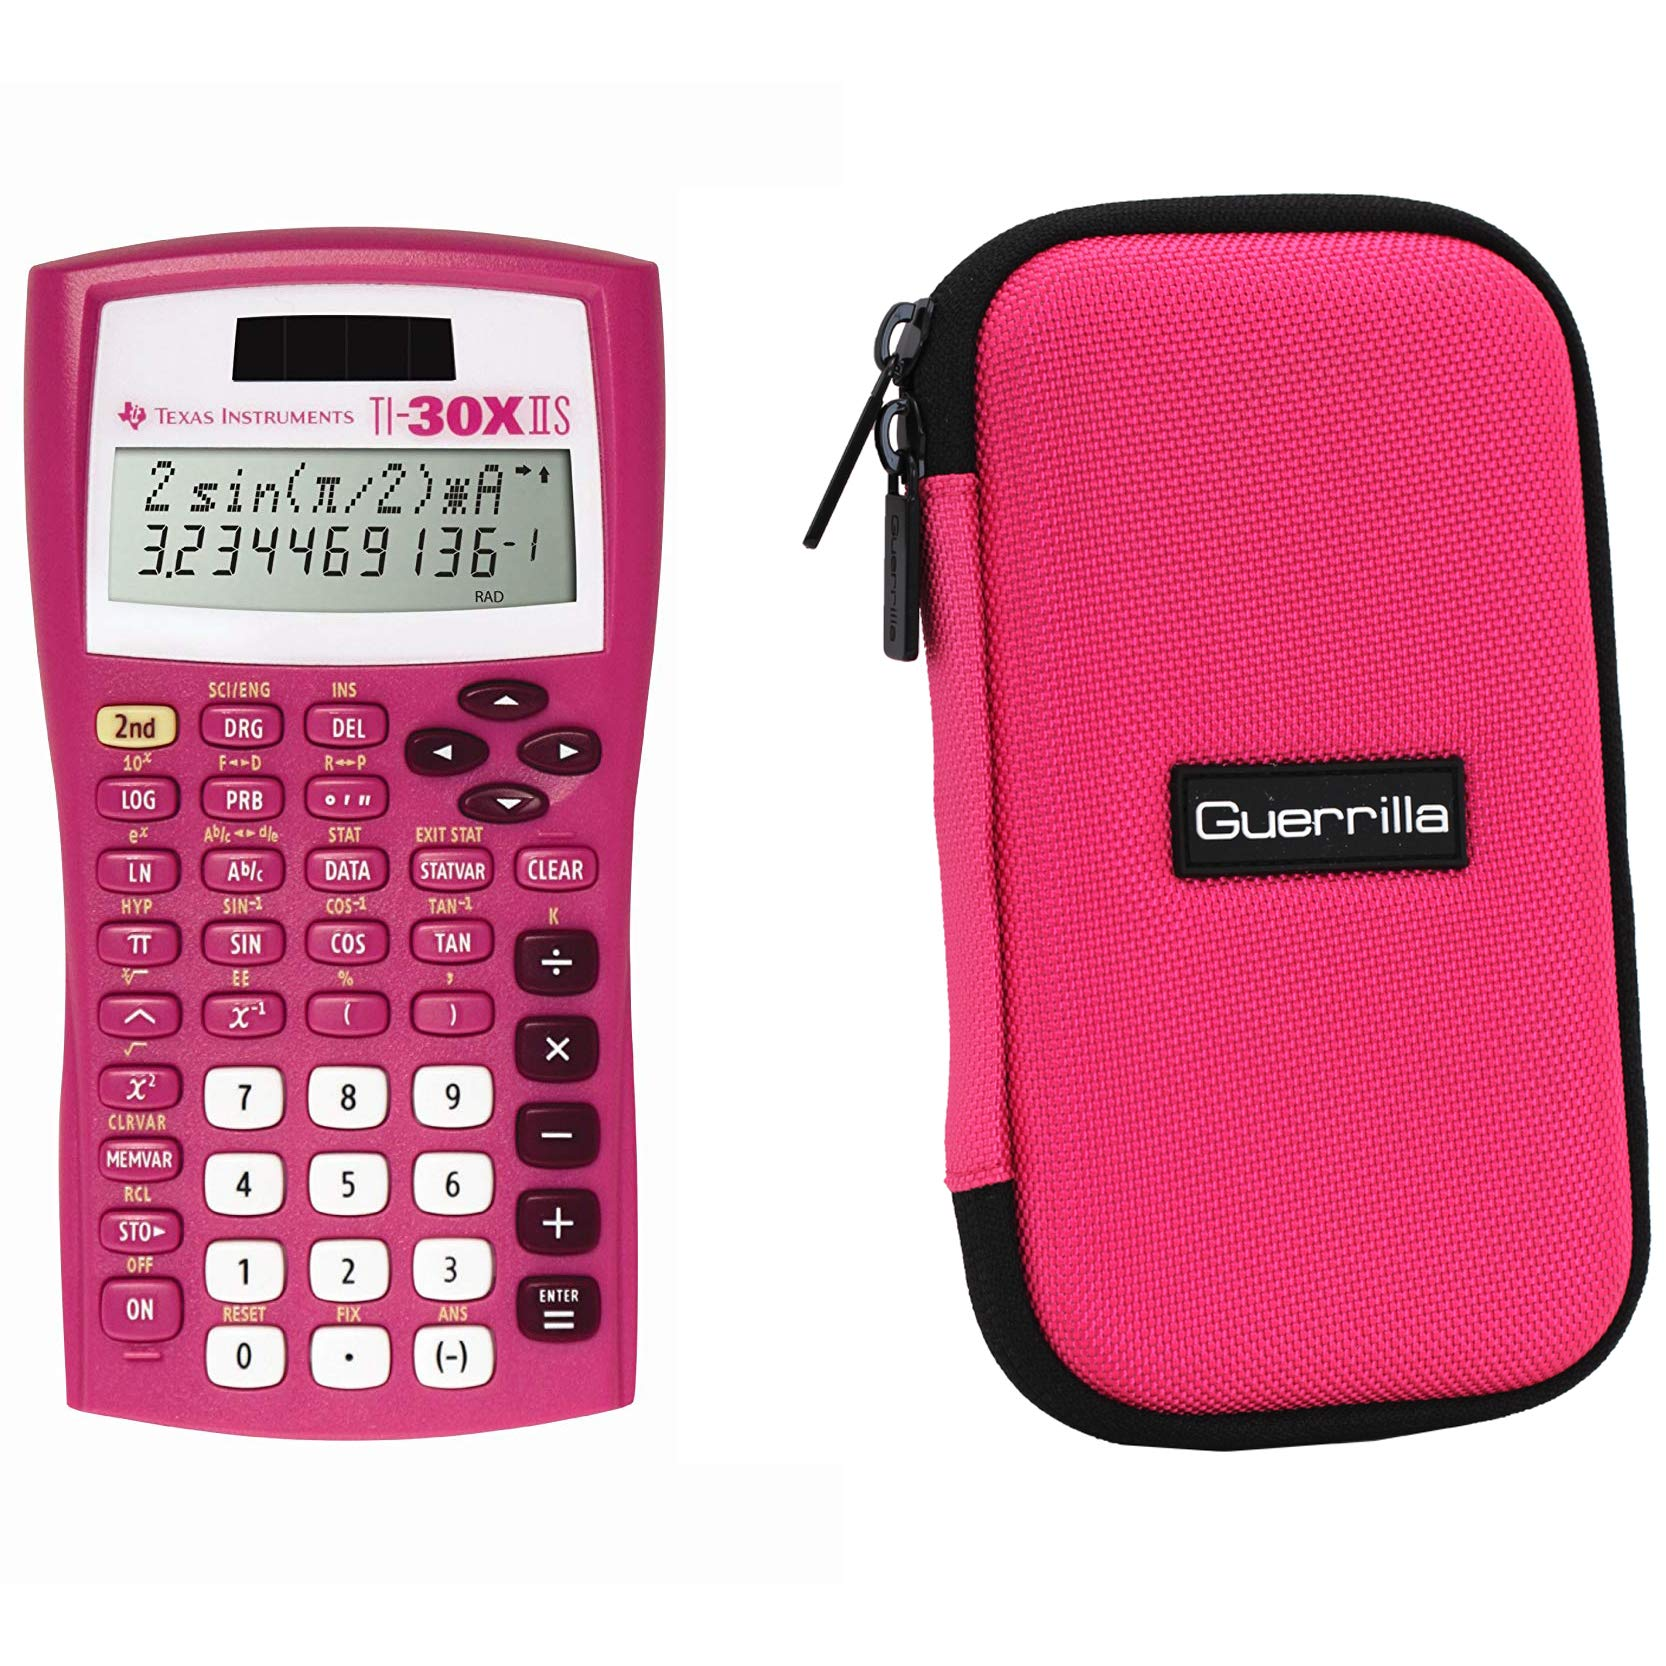 Texas Instruments TI-30XIIS Scientific Calculator + Guerrilla Zipper Case, for Extra Protection & Easy Storing (Pink) by Texas Instruments